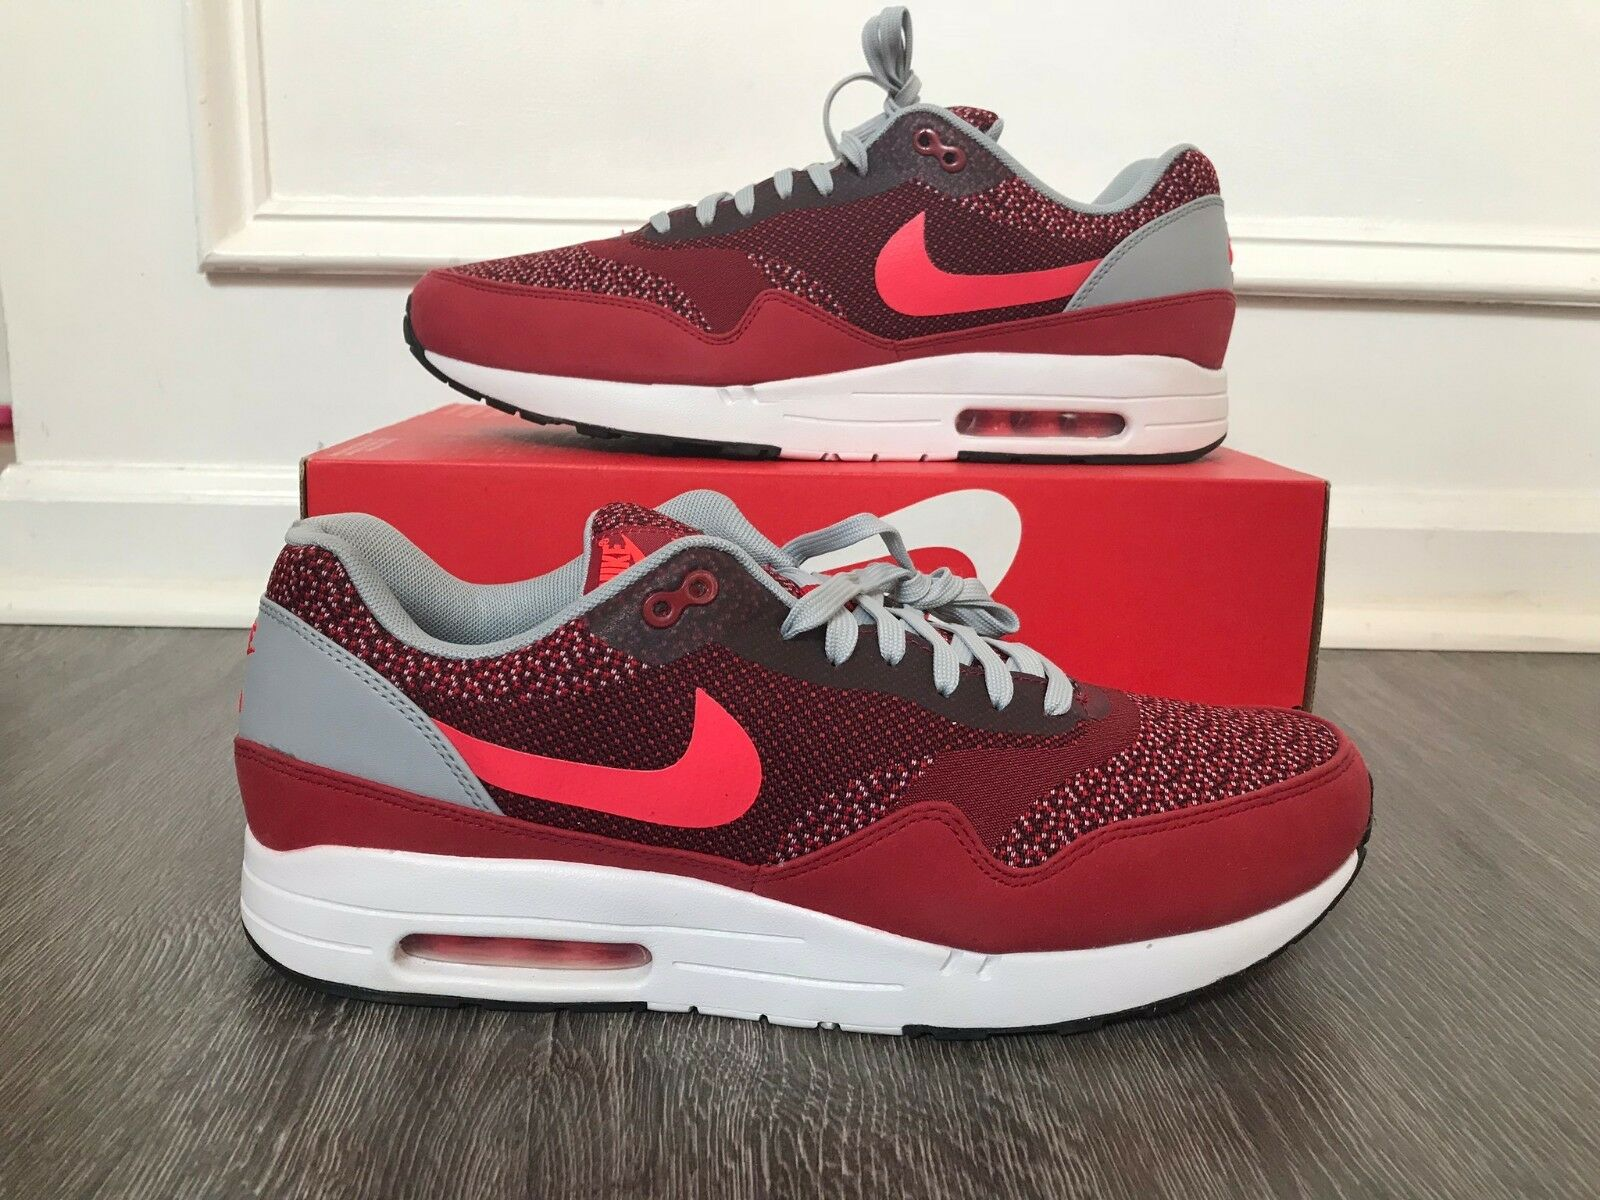 Nike Air Max 1 JCRD Jacquard Gym Red Laser Crimson 644153 600 Size 11.5 NEW